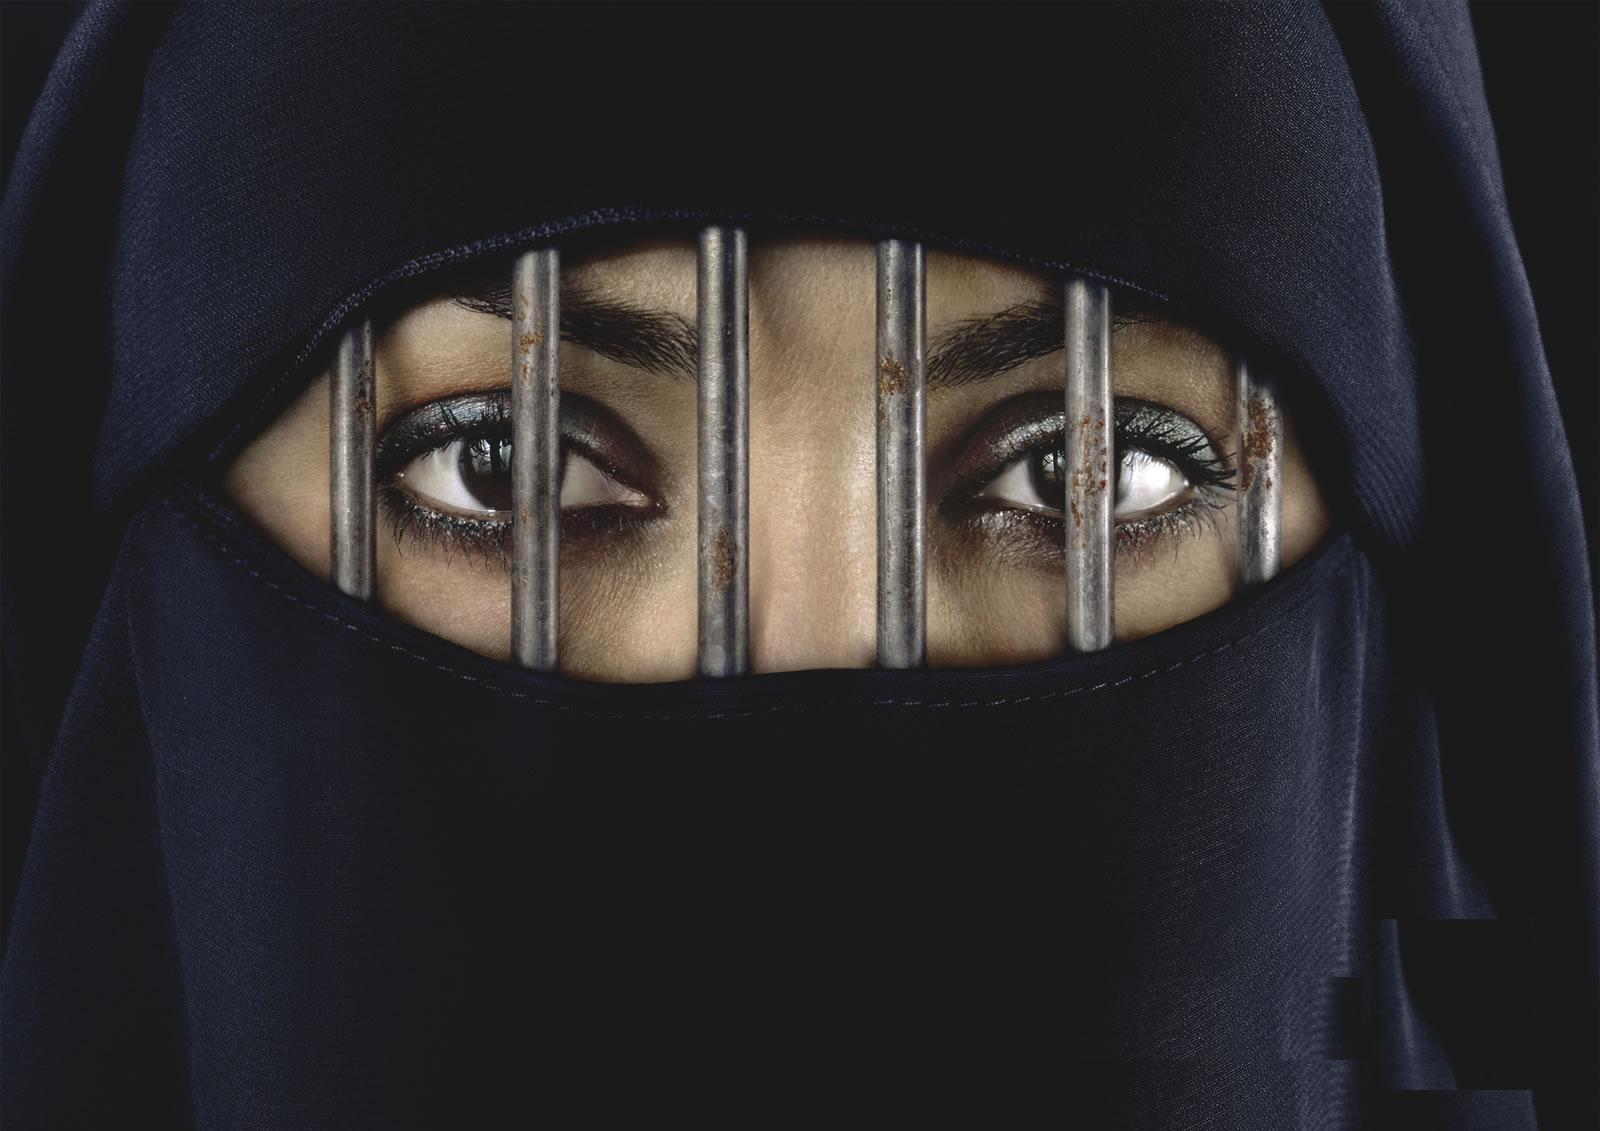 an introduction to the sexism and male hatred of women in islamic society and koran These are genuinely male  excited by islamic violence against women simply because it is  to a society with a basic level of everyday sexism and that.